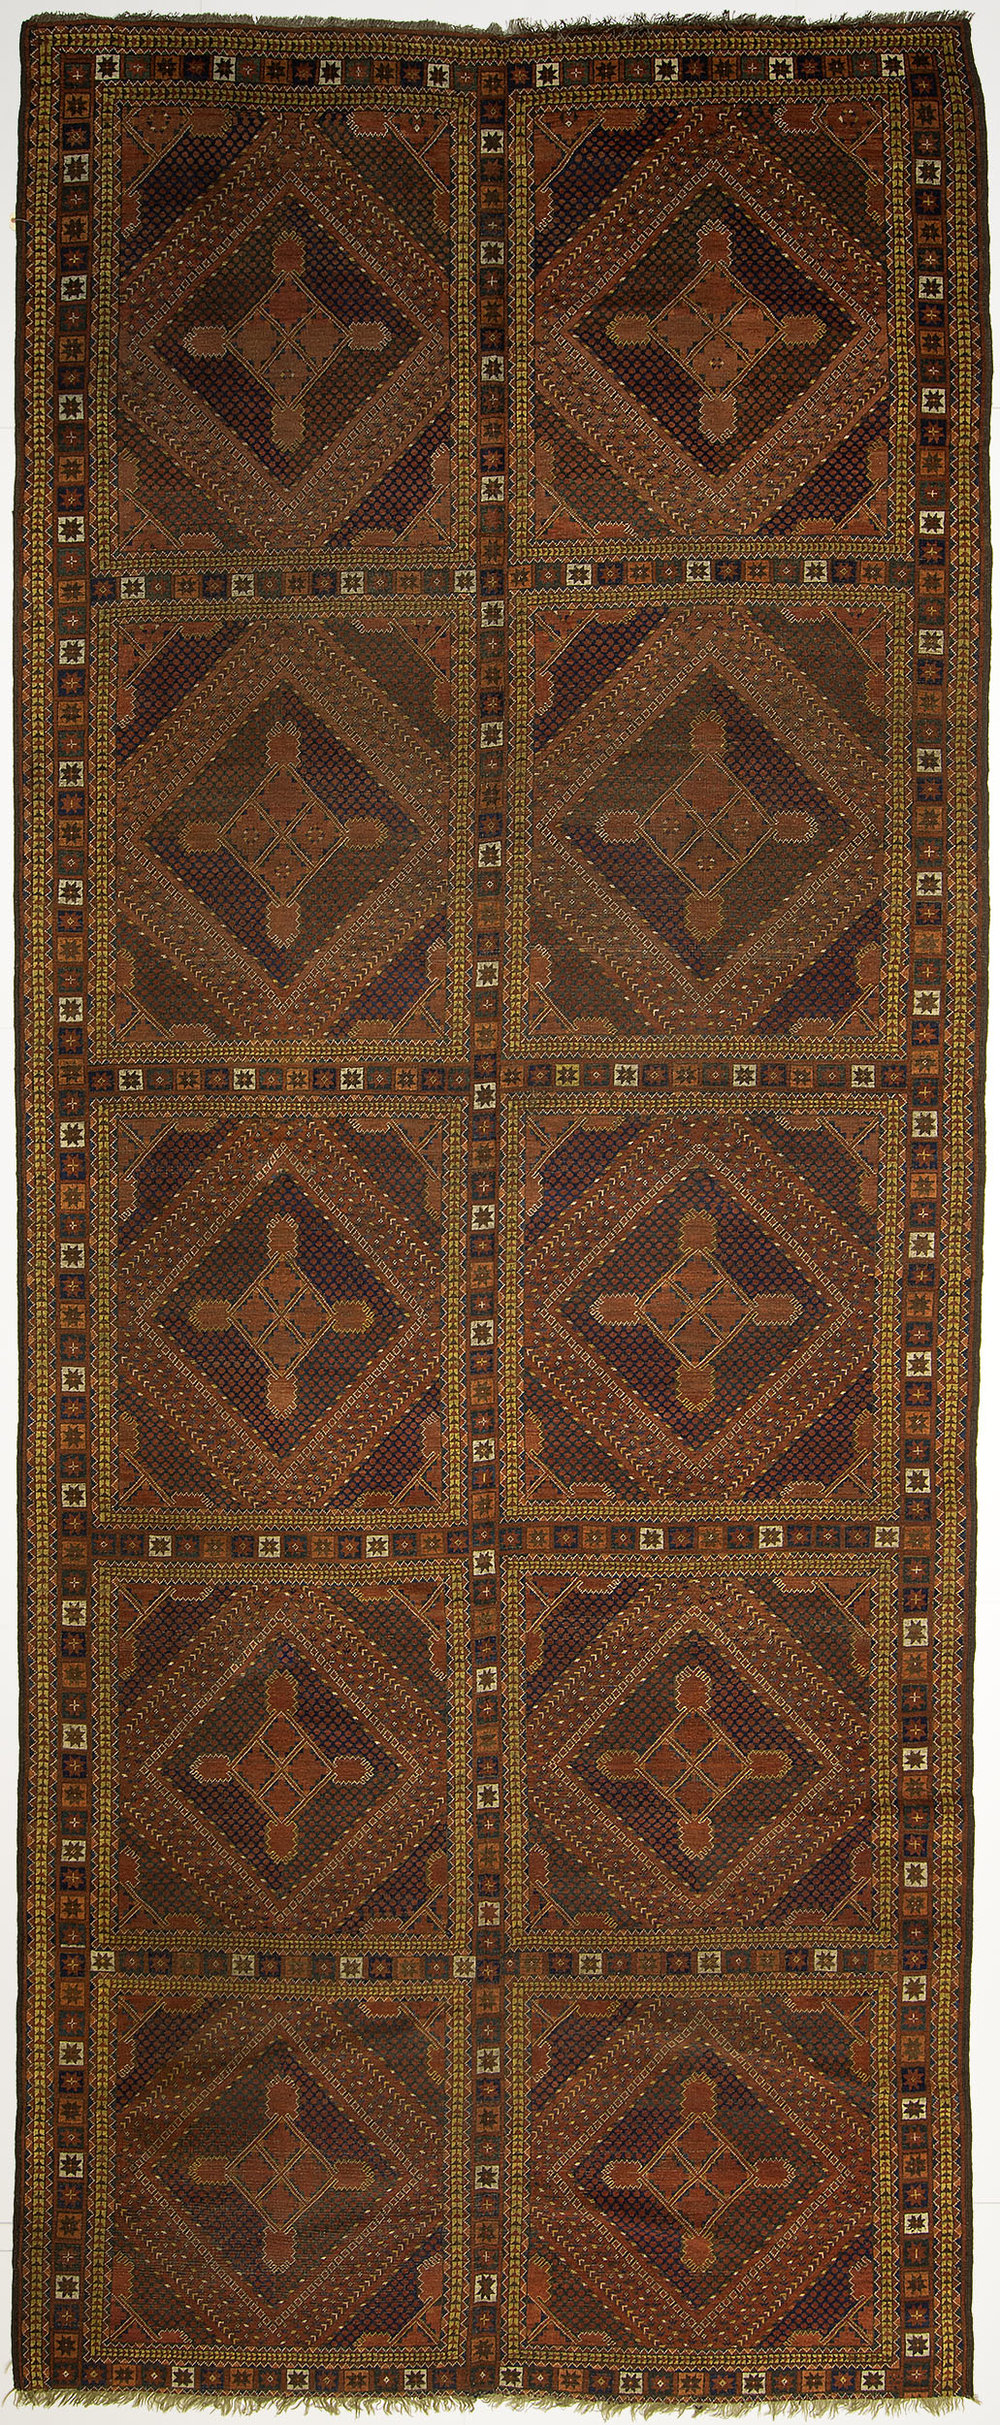 "Ersari Gallery Carpet 19' 5"" x 7' 10"""